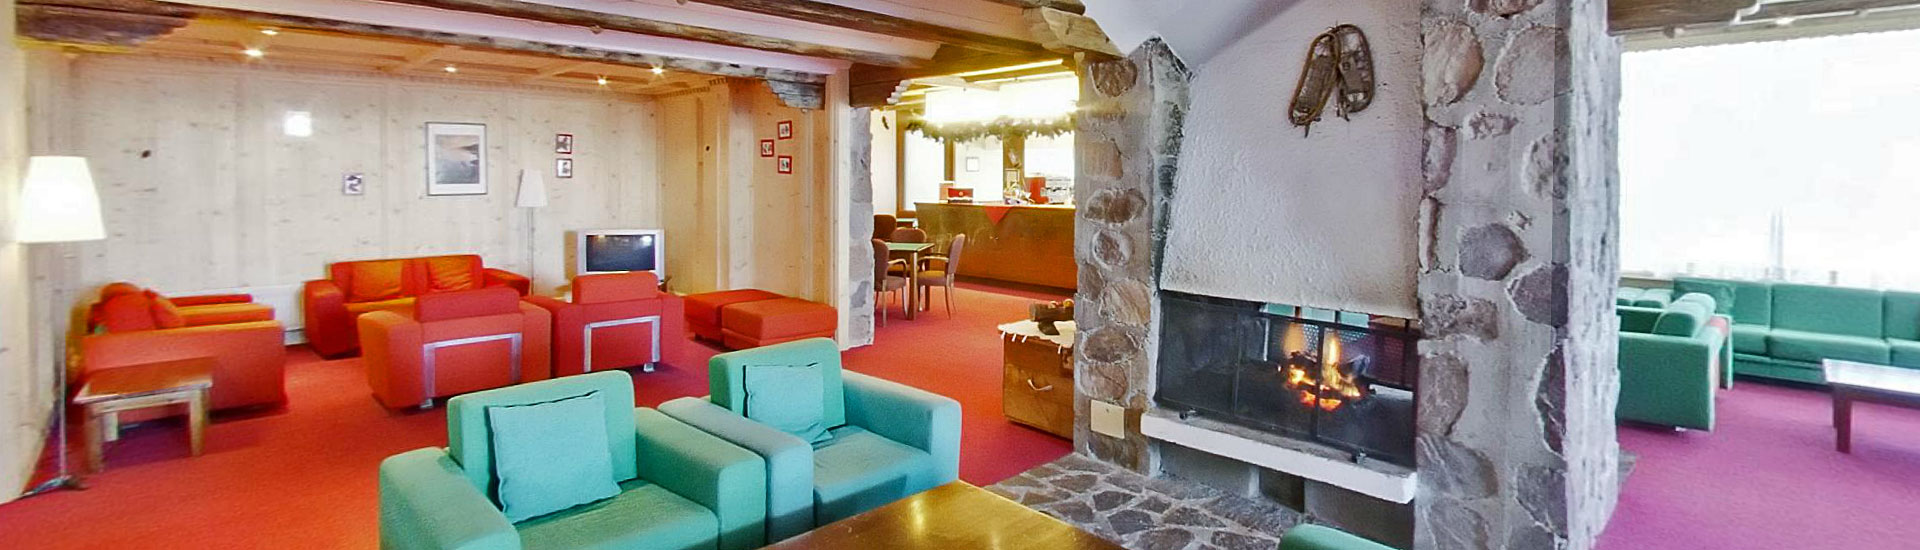 cavalese-hotel-eurotel-hall